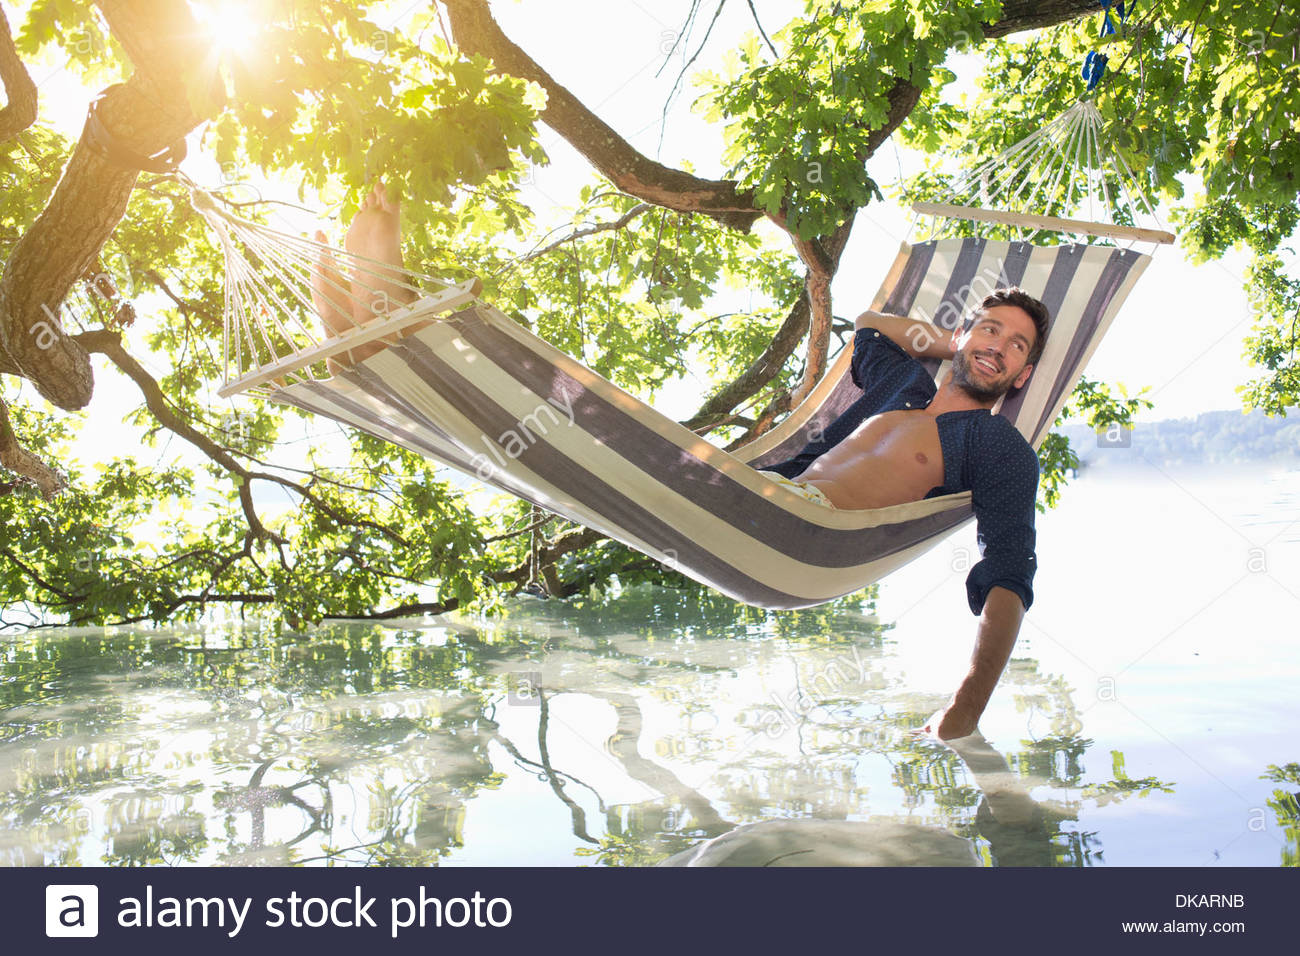 Mature man in hammock dipping hand in lake - Stock Image